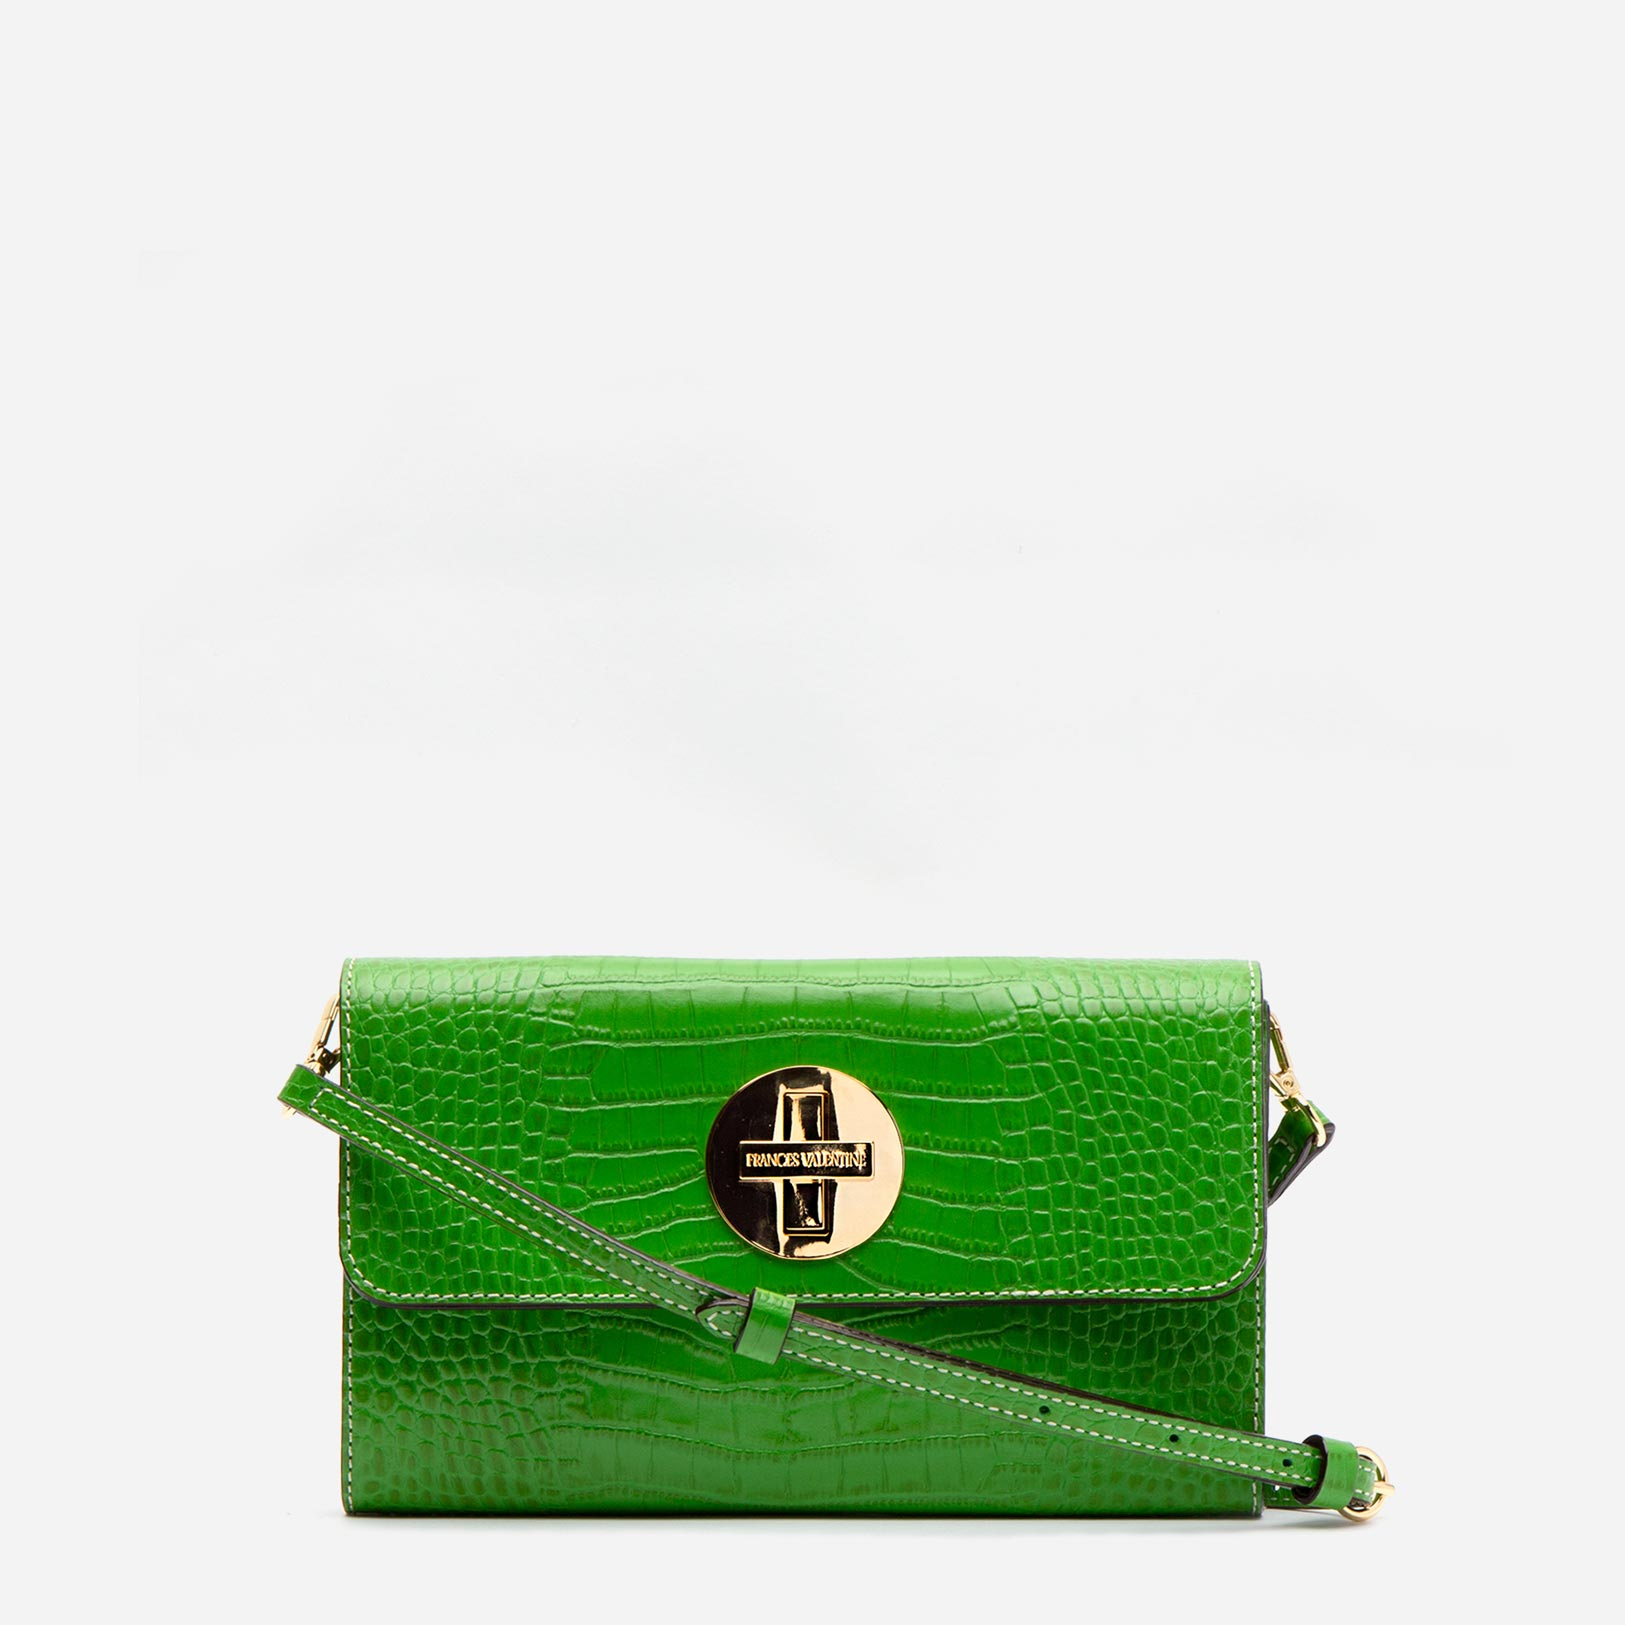 Kelly Crossbody Clutch Croc Embossed Leather Green - Frances Valentine